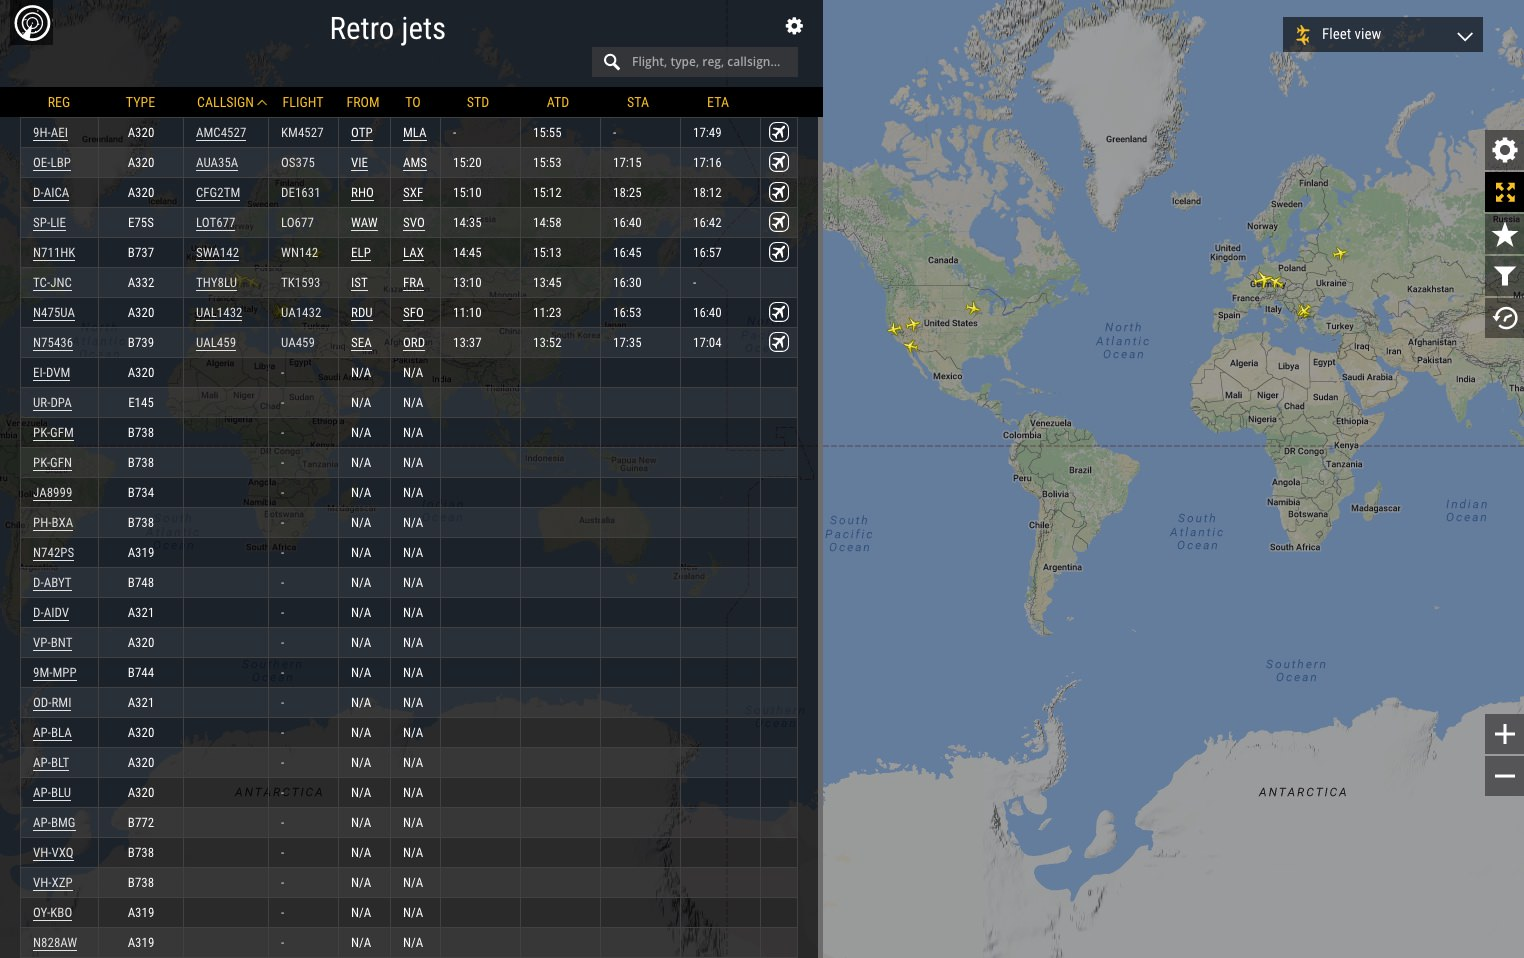 Fleet View Example Flightradar24 Blog